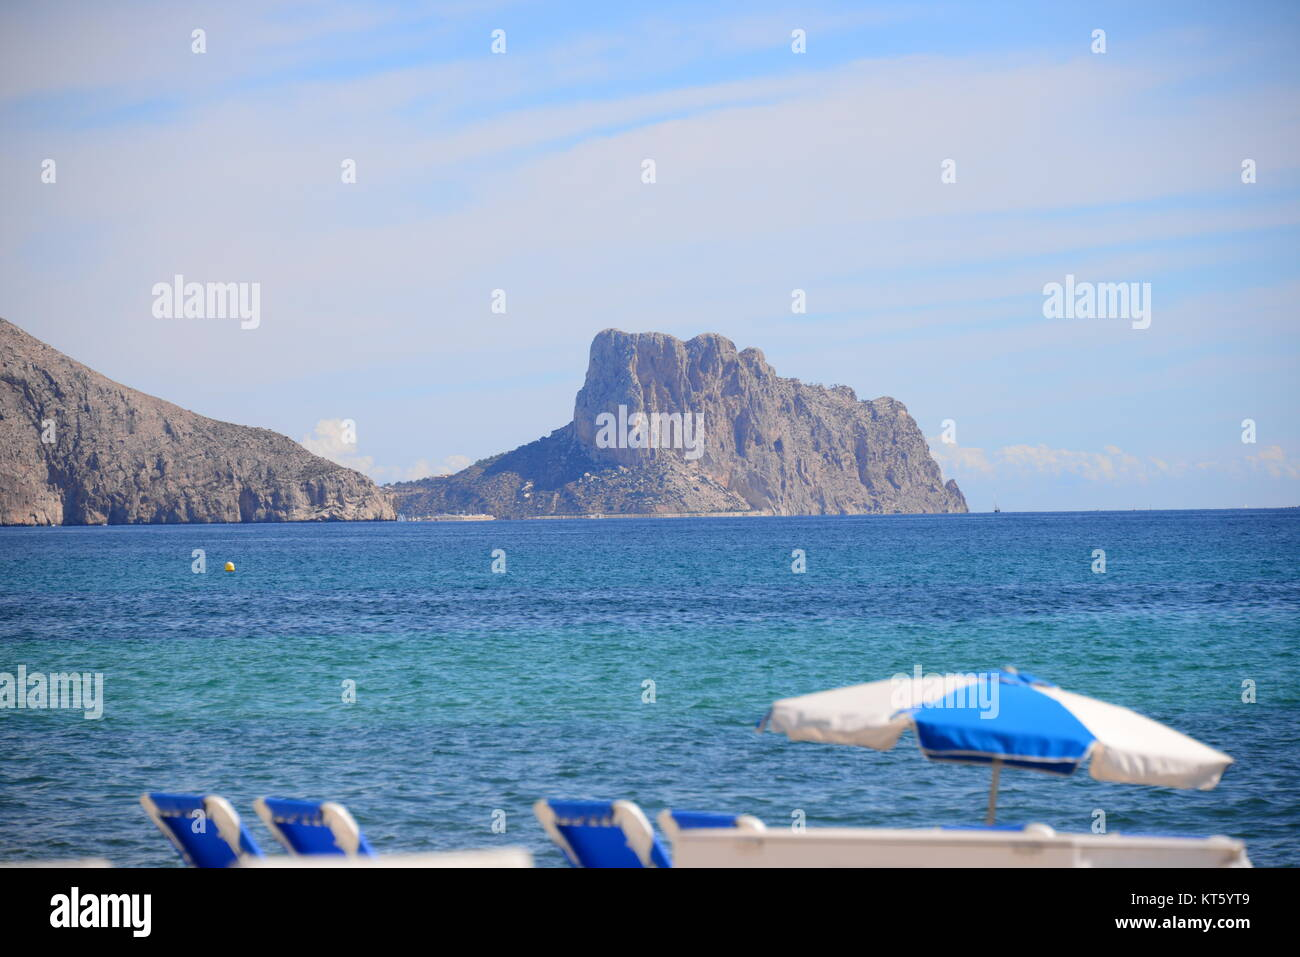 city views of altea - costa blanca - spain Stock Photo